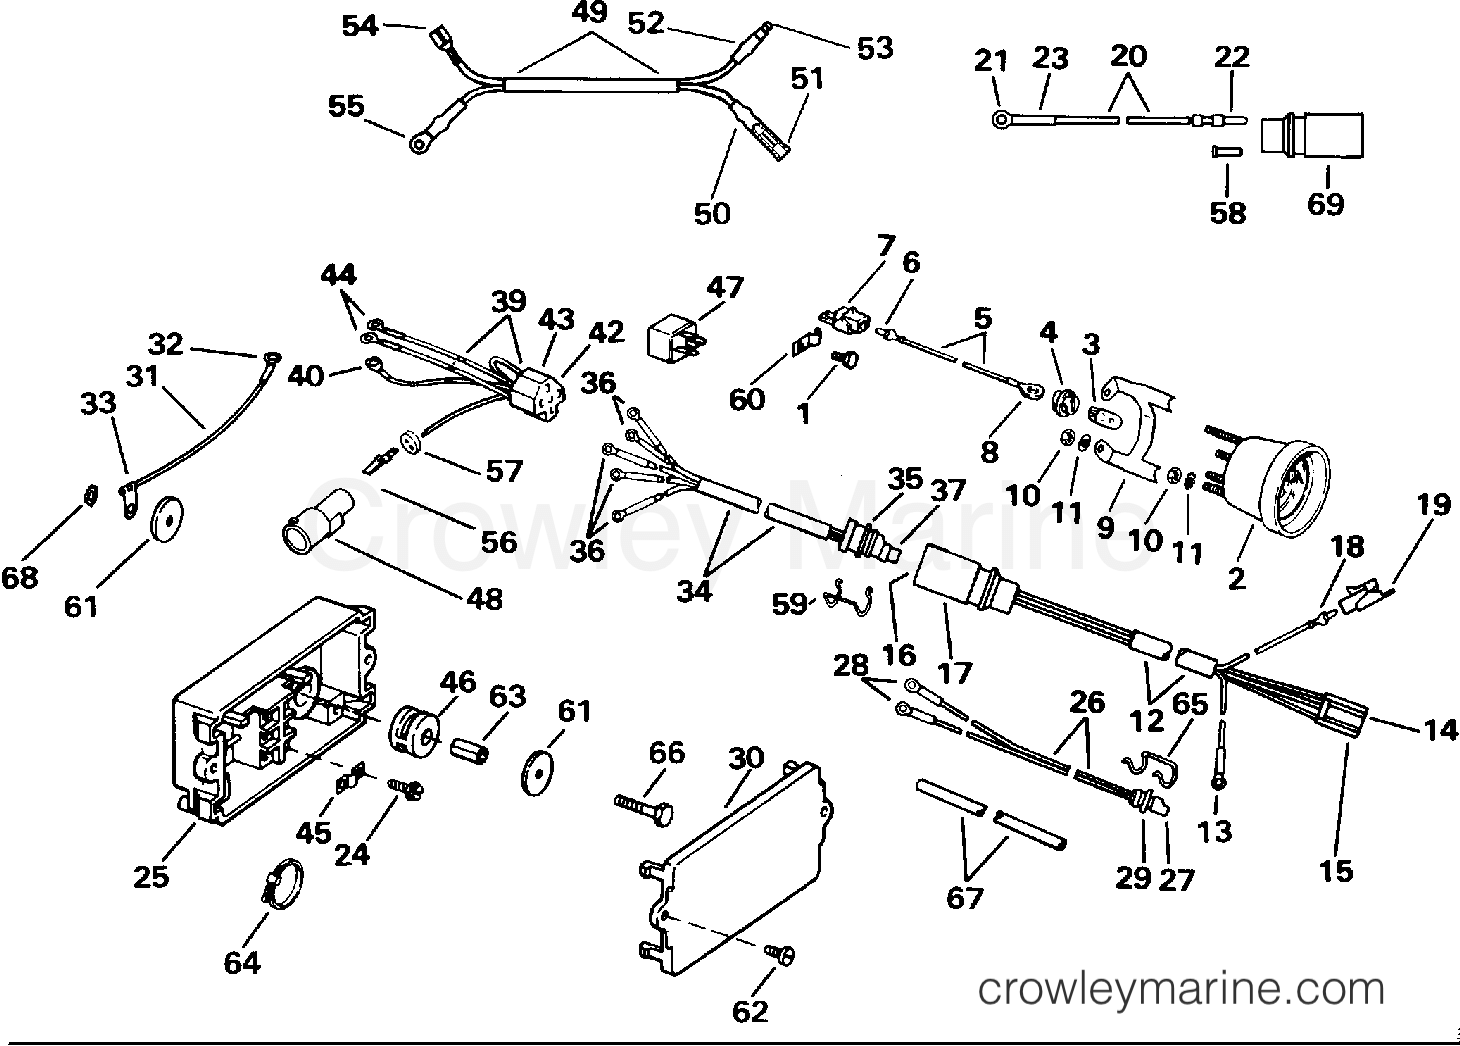 Power Trim Tilt Electrical 1991 Evinrude Outboards 120 Ve120tleie Mercruiser Engine Wiring Diagram Section